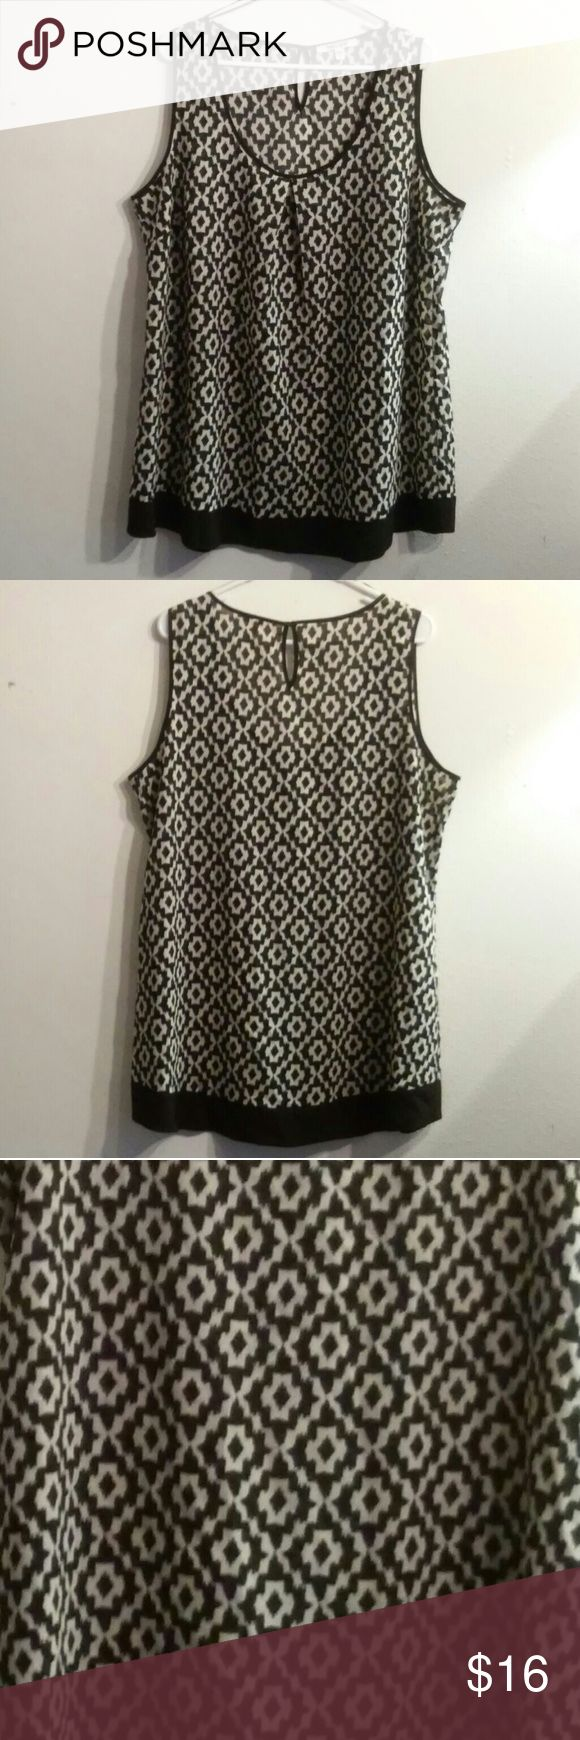 """Daniel Rainn Tunic Top Sz. 1X NWOT Flowy little tunic top from Daniel Rainn Sz 1x. Could be worn as a mini dress if your MY height (5'2"""") with a long cami or slip under it.  Keyhole button in back.  Back of neck to hem is 30.5"""". Bust is 25"""" side to side.  This would be super cute & easy with capris or leggings and sandals. Dress it up with heels & a long tassel necklace.  Bundle up & save on shipping! Daniel Rainn Tops Tunics"""